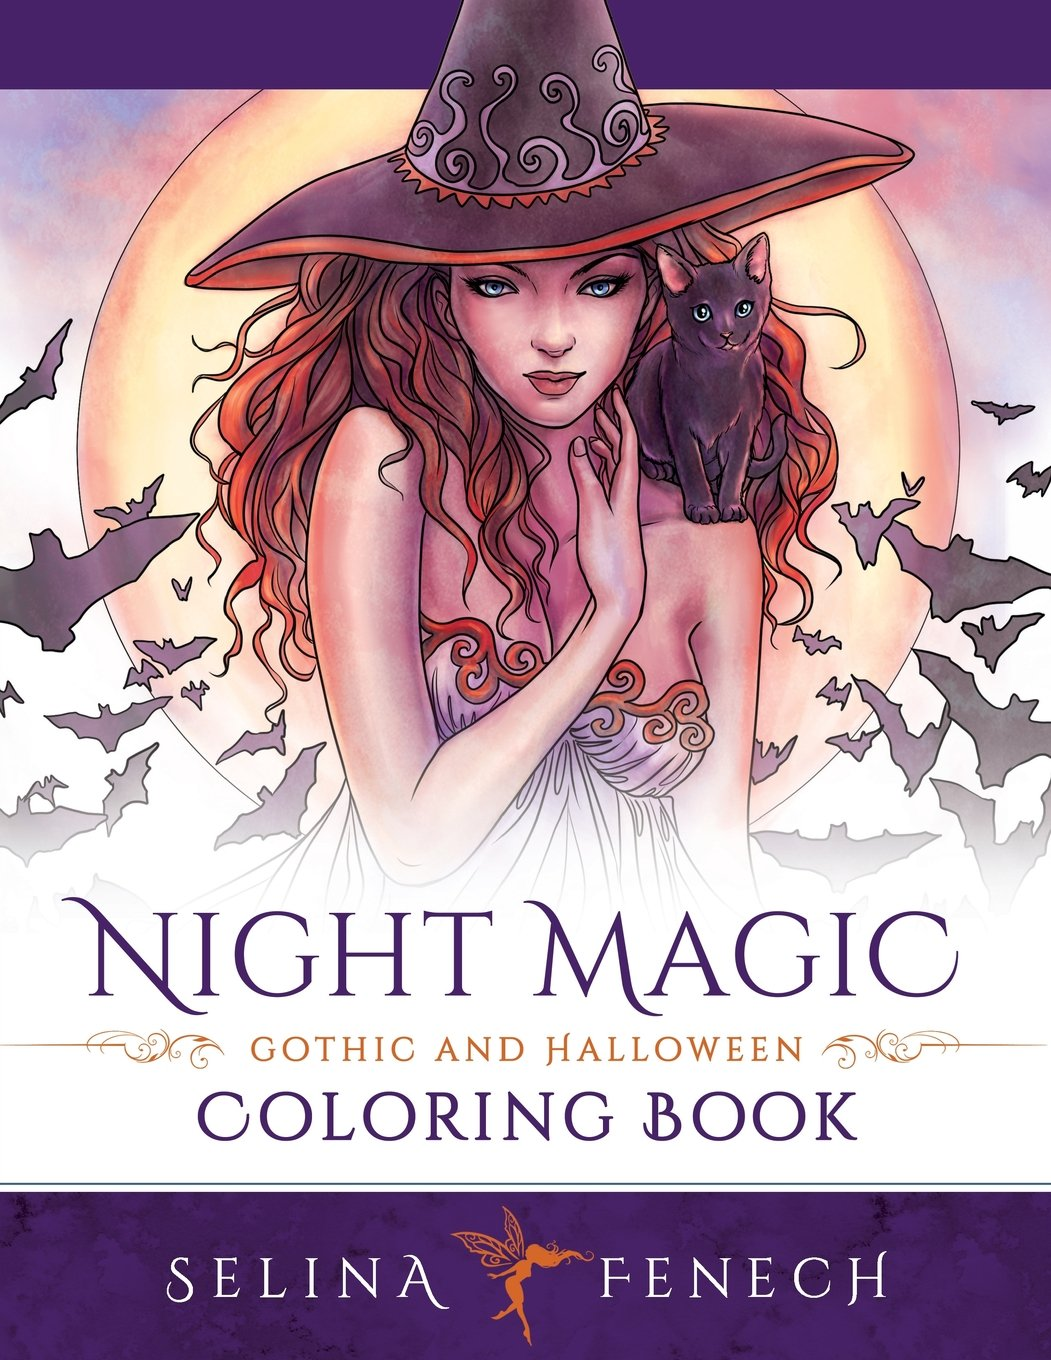 amazoncom night magic gothic and halloween coloring book fantasy coloring by selina volume 10 9780994585233 selina fenech books - Gothic Coloring Book